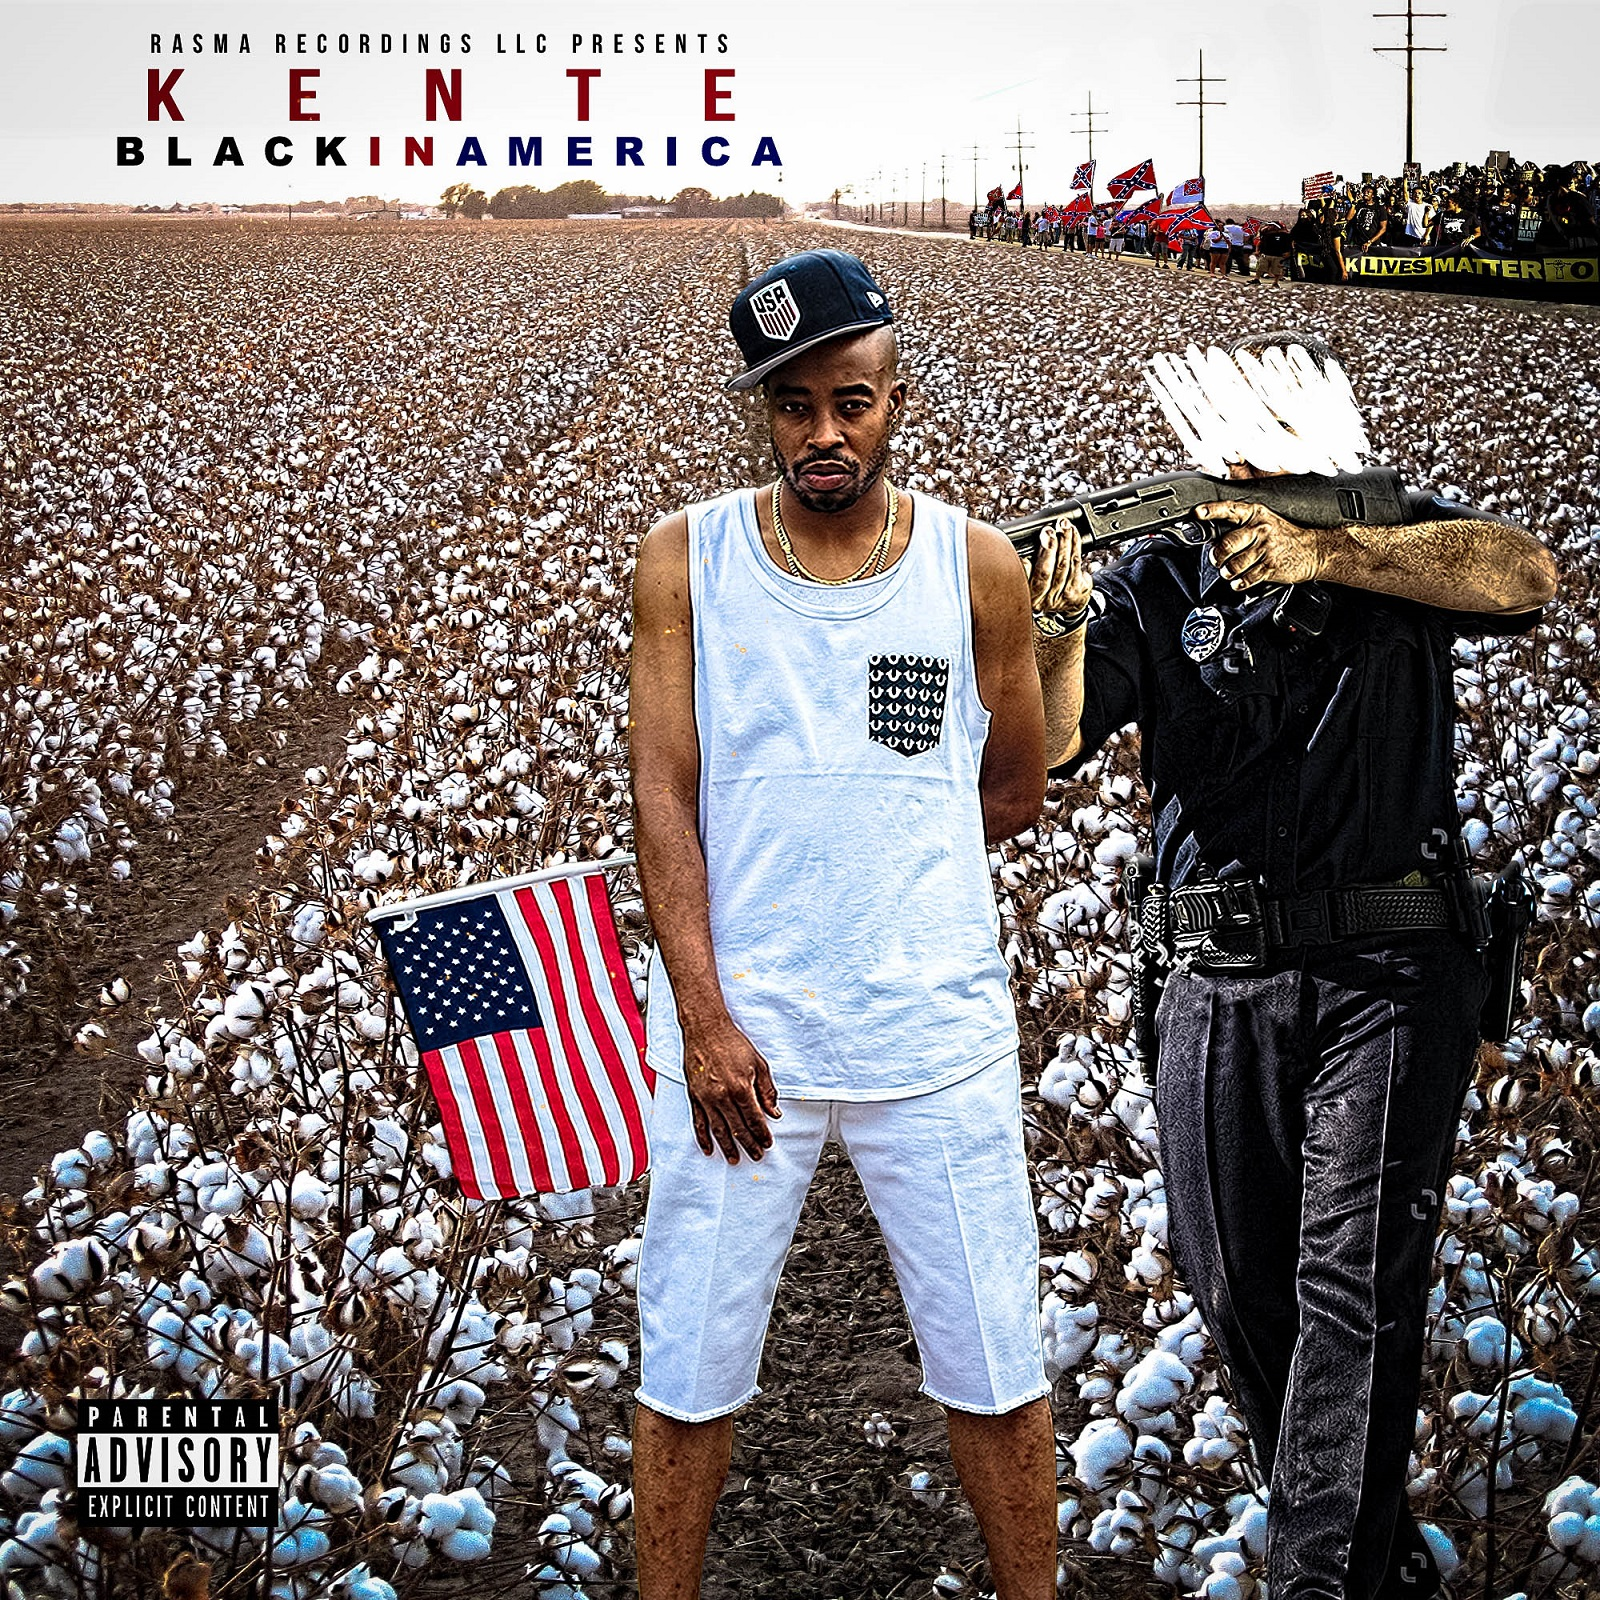 New Video: Kente – Black In America | @mistakente